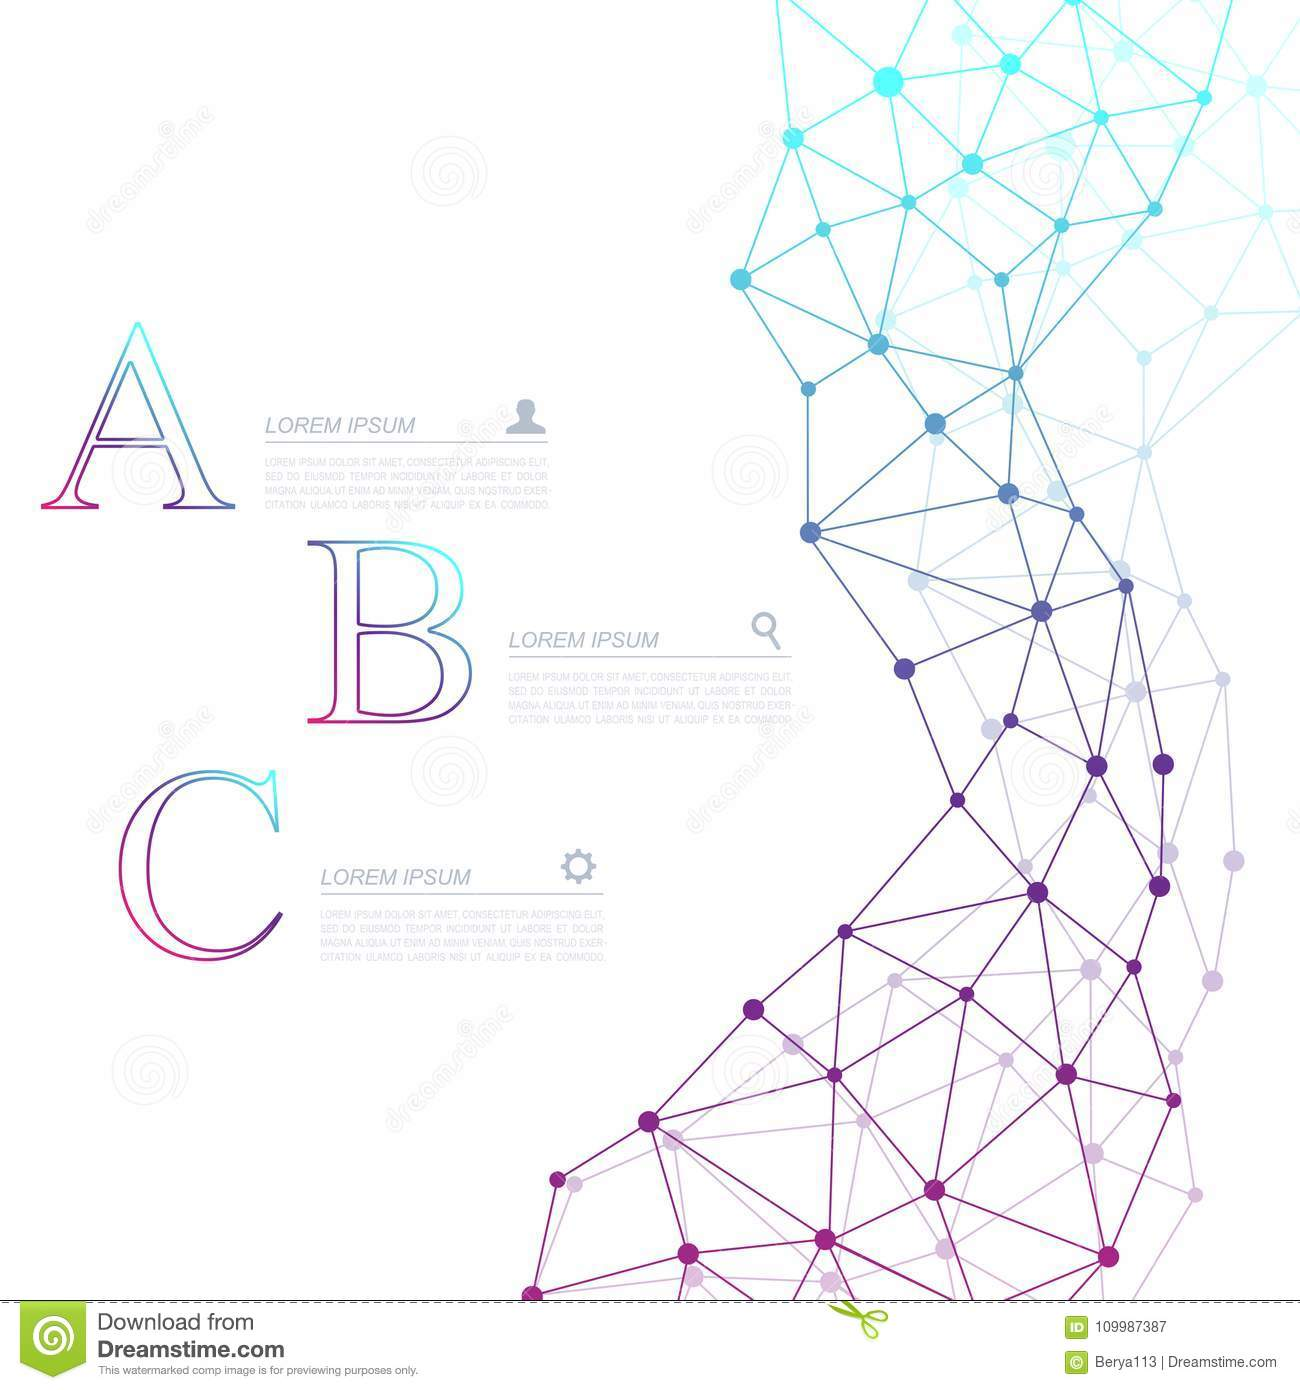 Abstract dna molecule vector business infographic medical chemistry abstract dna molecule vector business infographic medical chemistry infographic design scientific business template ccuart Images